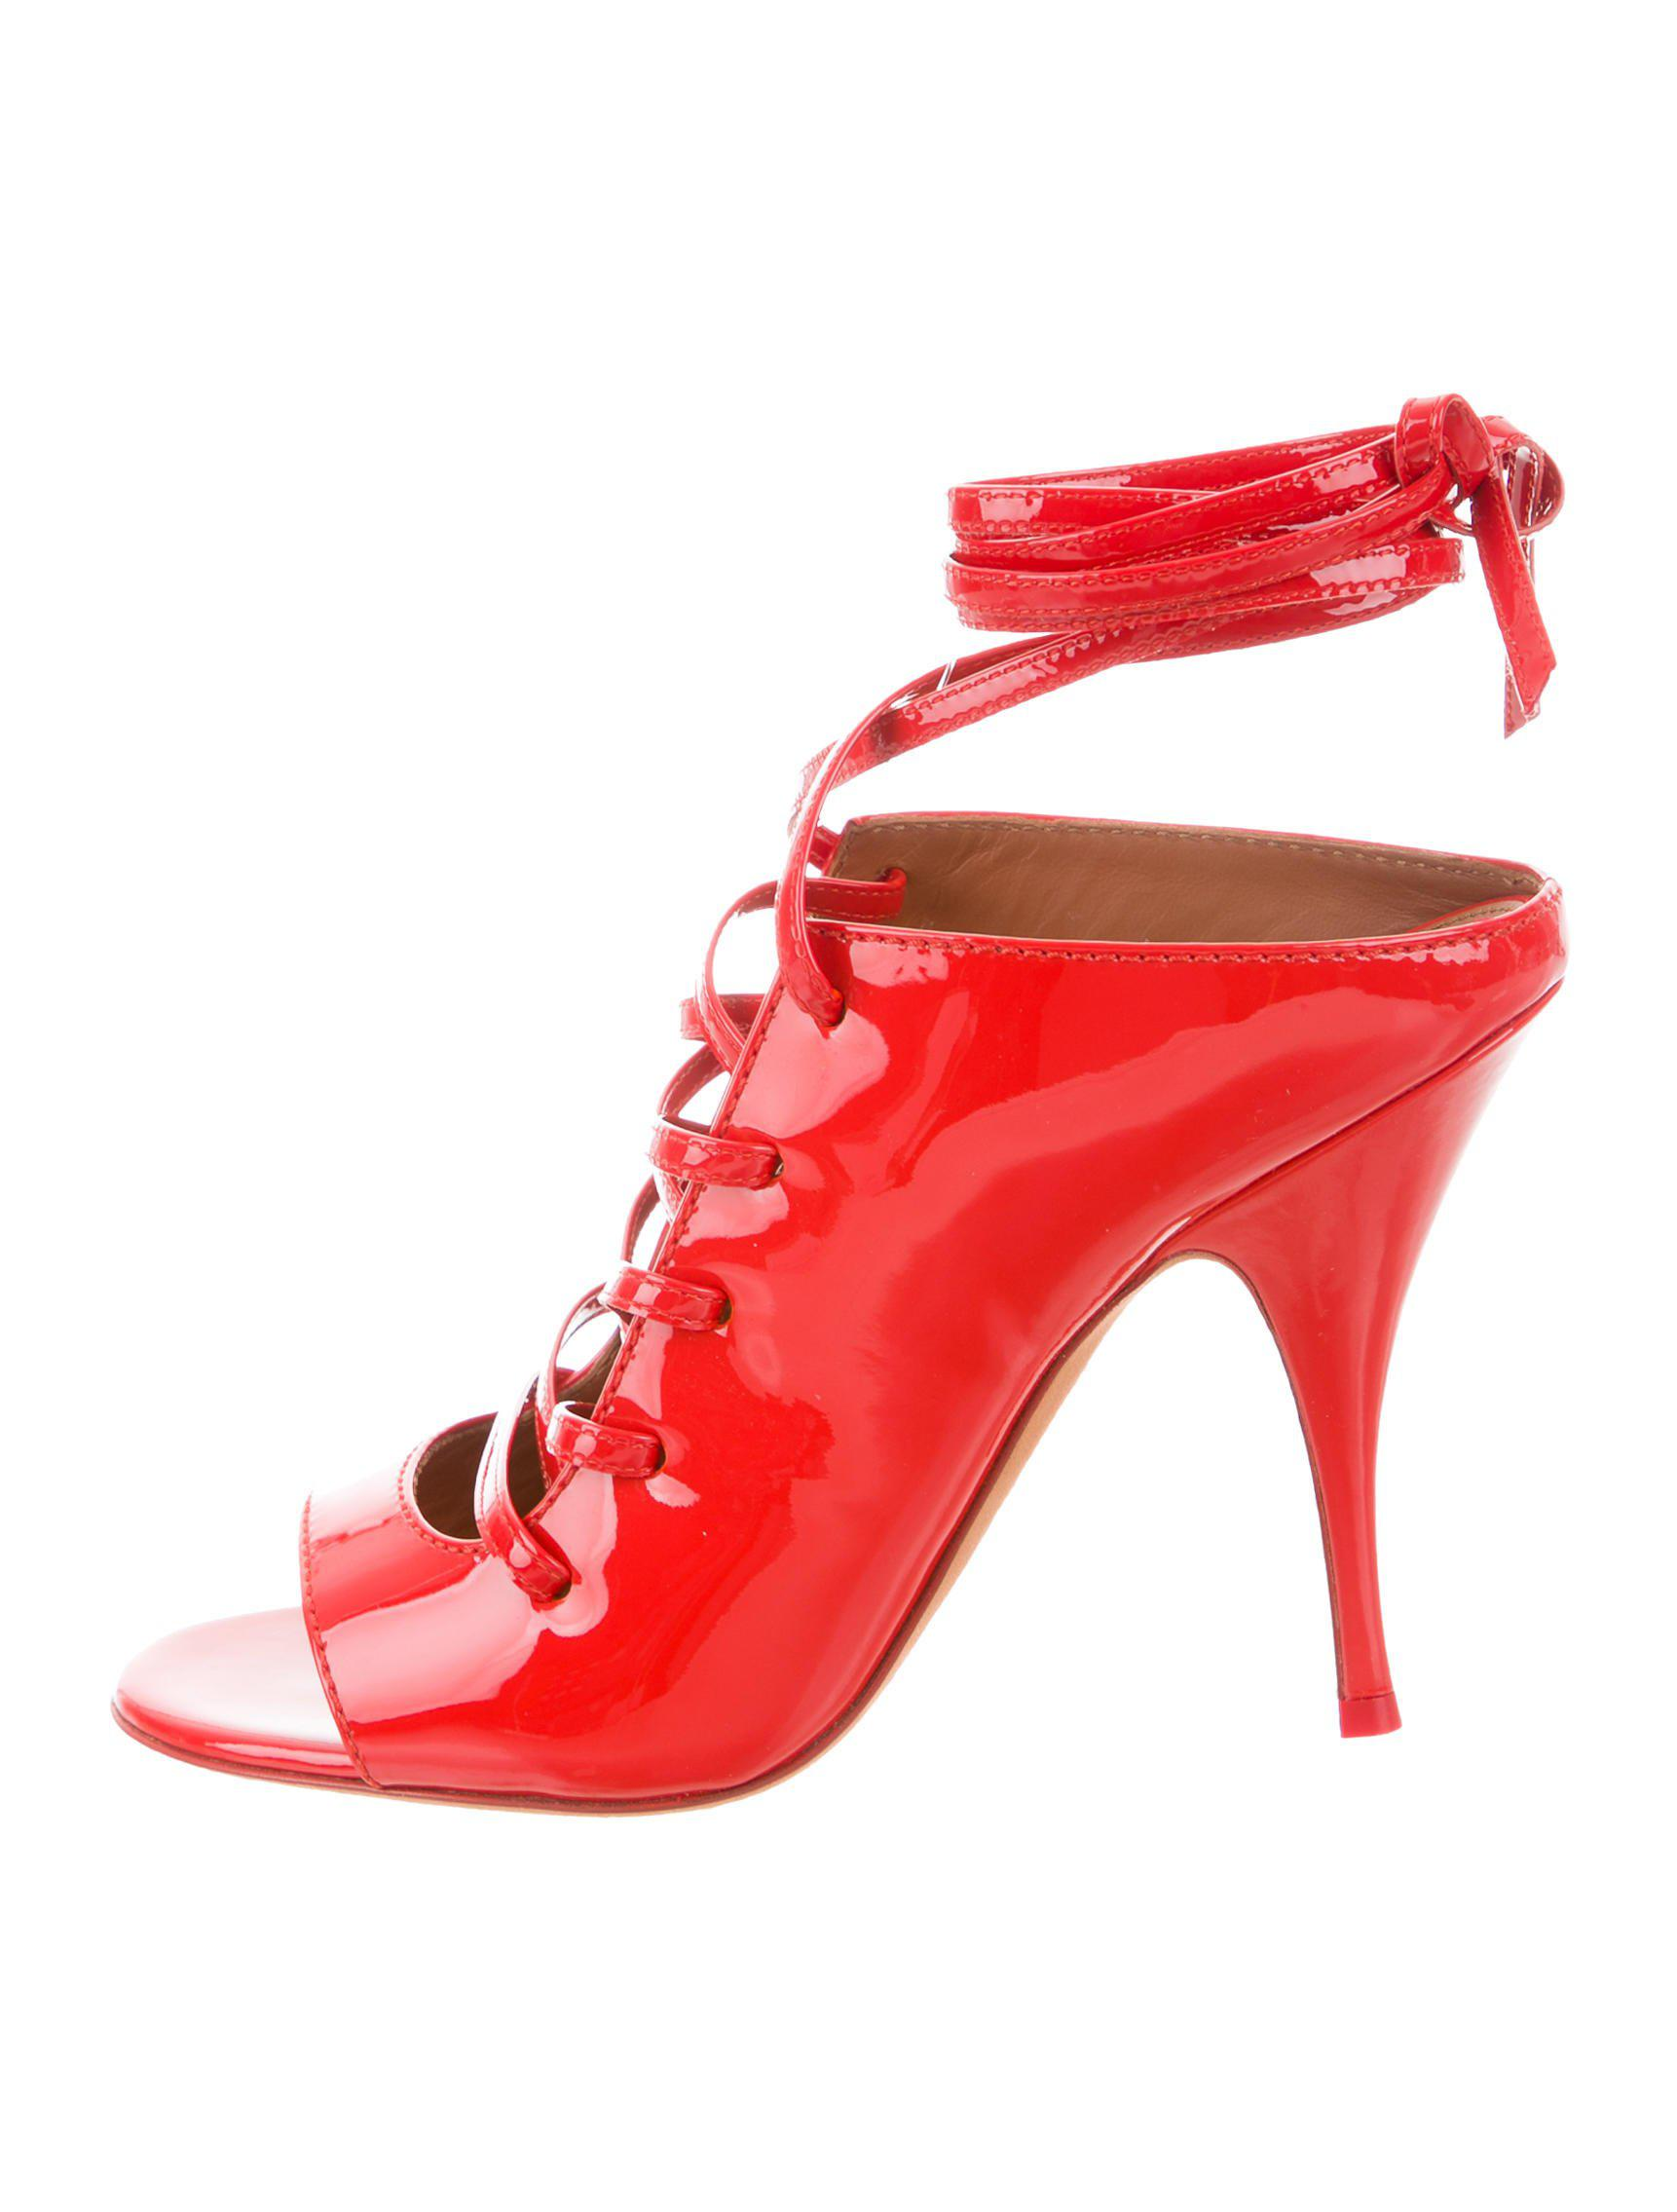 Givenchy Patent Leather Lace-Up Sandals w/ Tags buy cheap 100% authentic free shipping low price cheap sale shopping online pdPMnCh